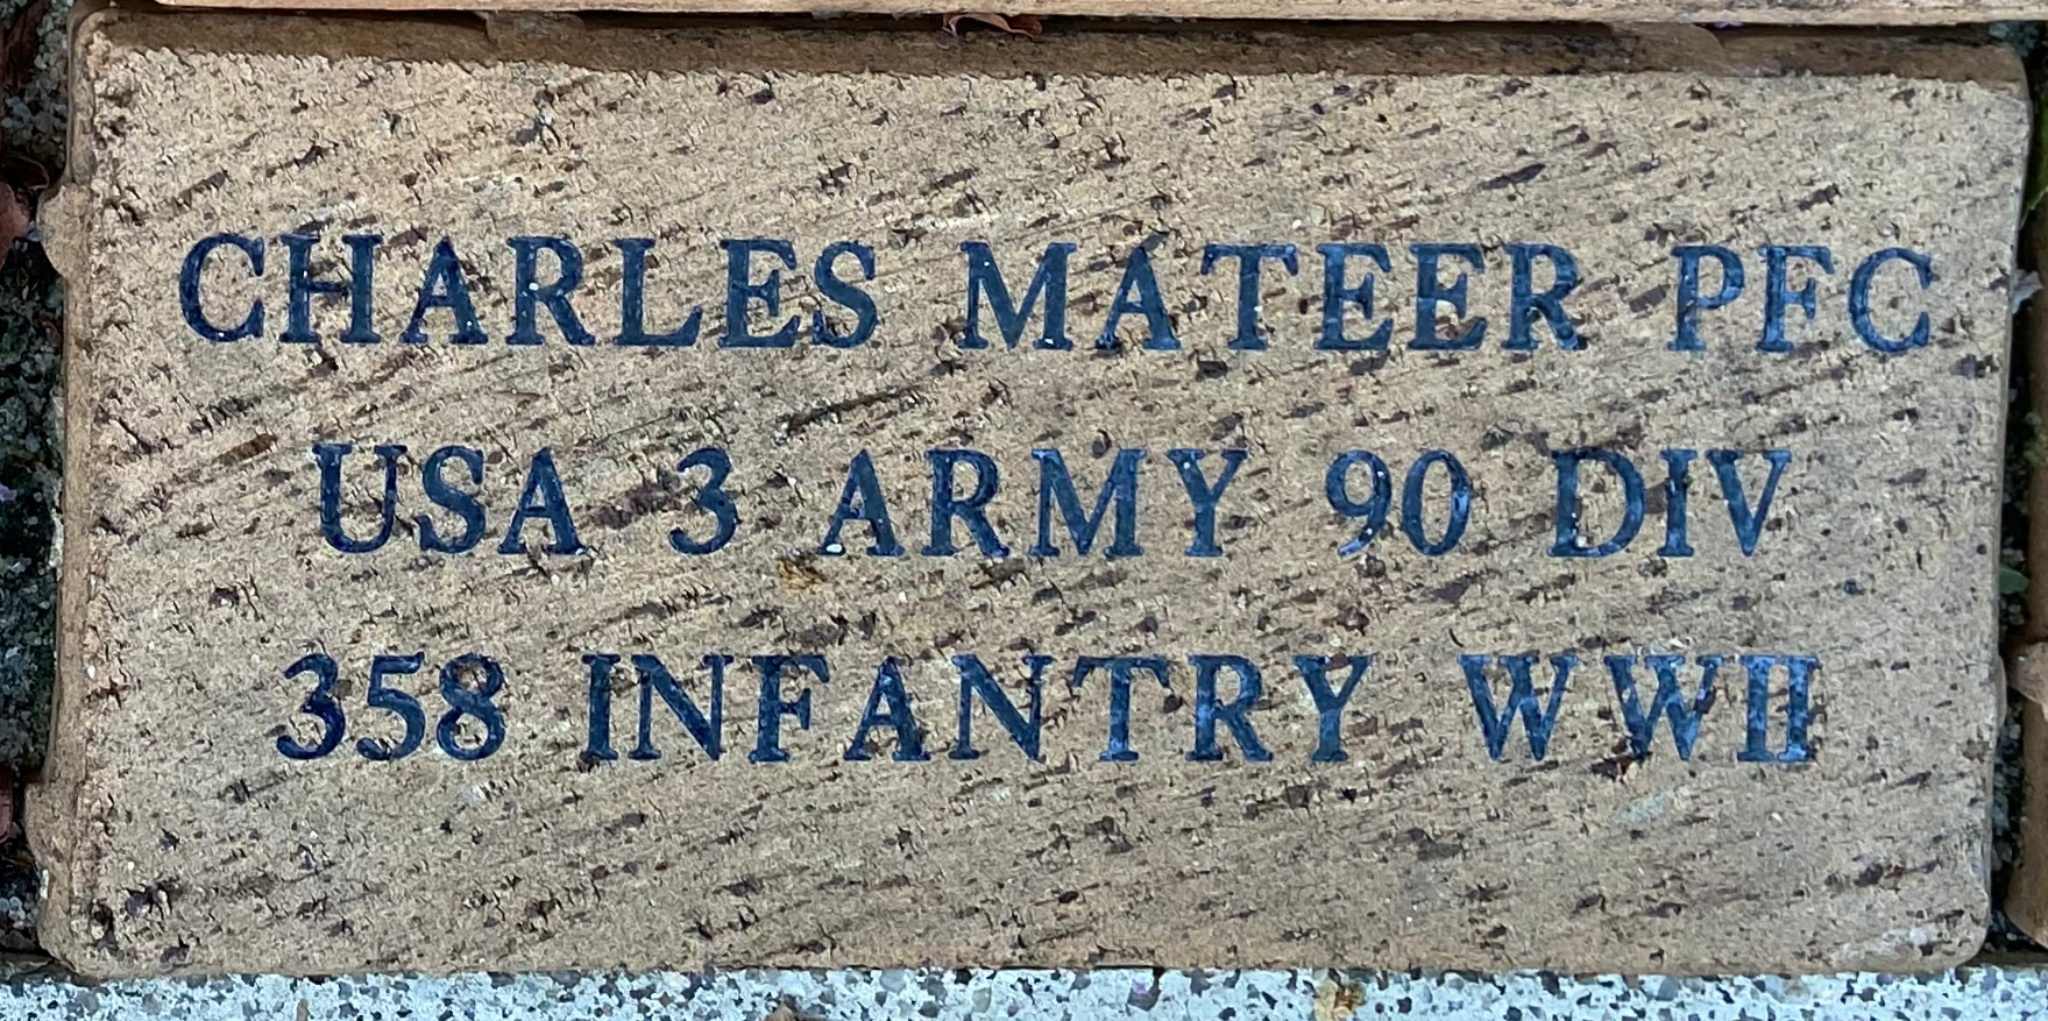 CHARLES MATEER PFC USA 3 ARMY 90 DIV 358 INFANTRY WWII